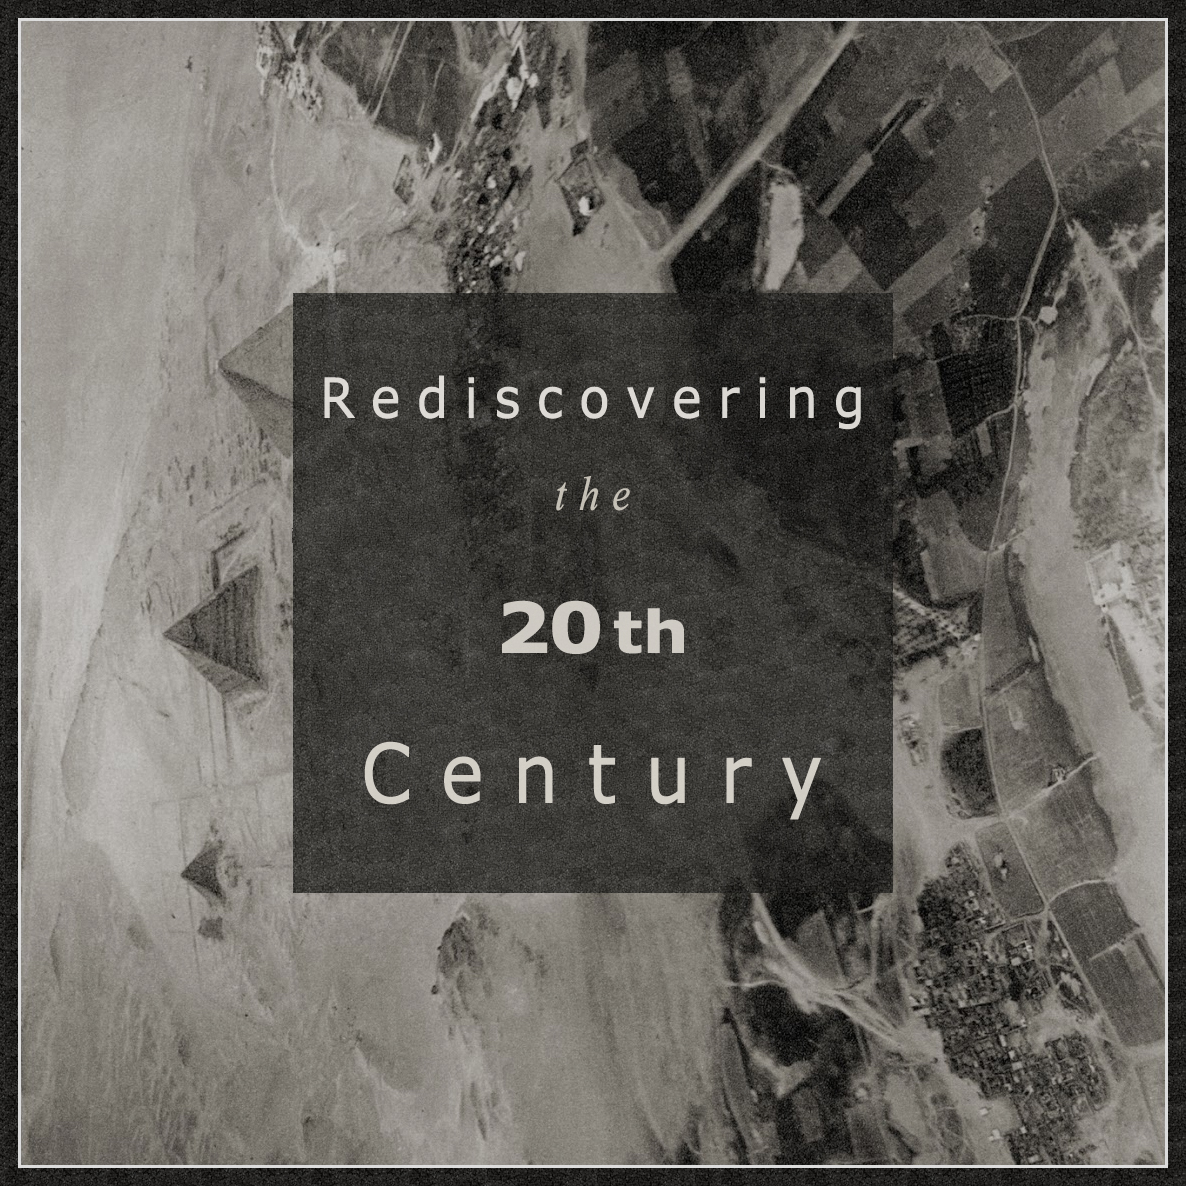 Rediscovering the 20th Century